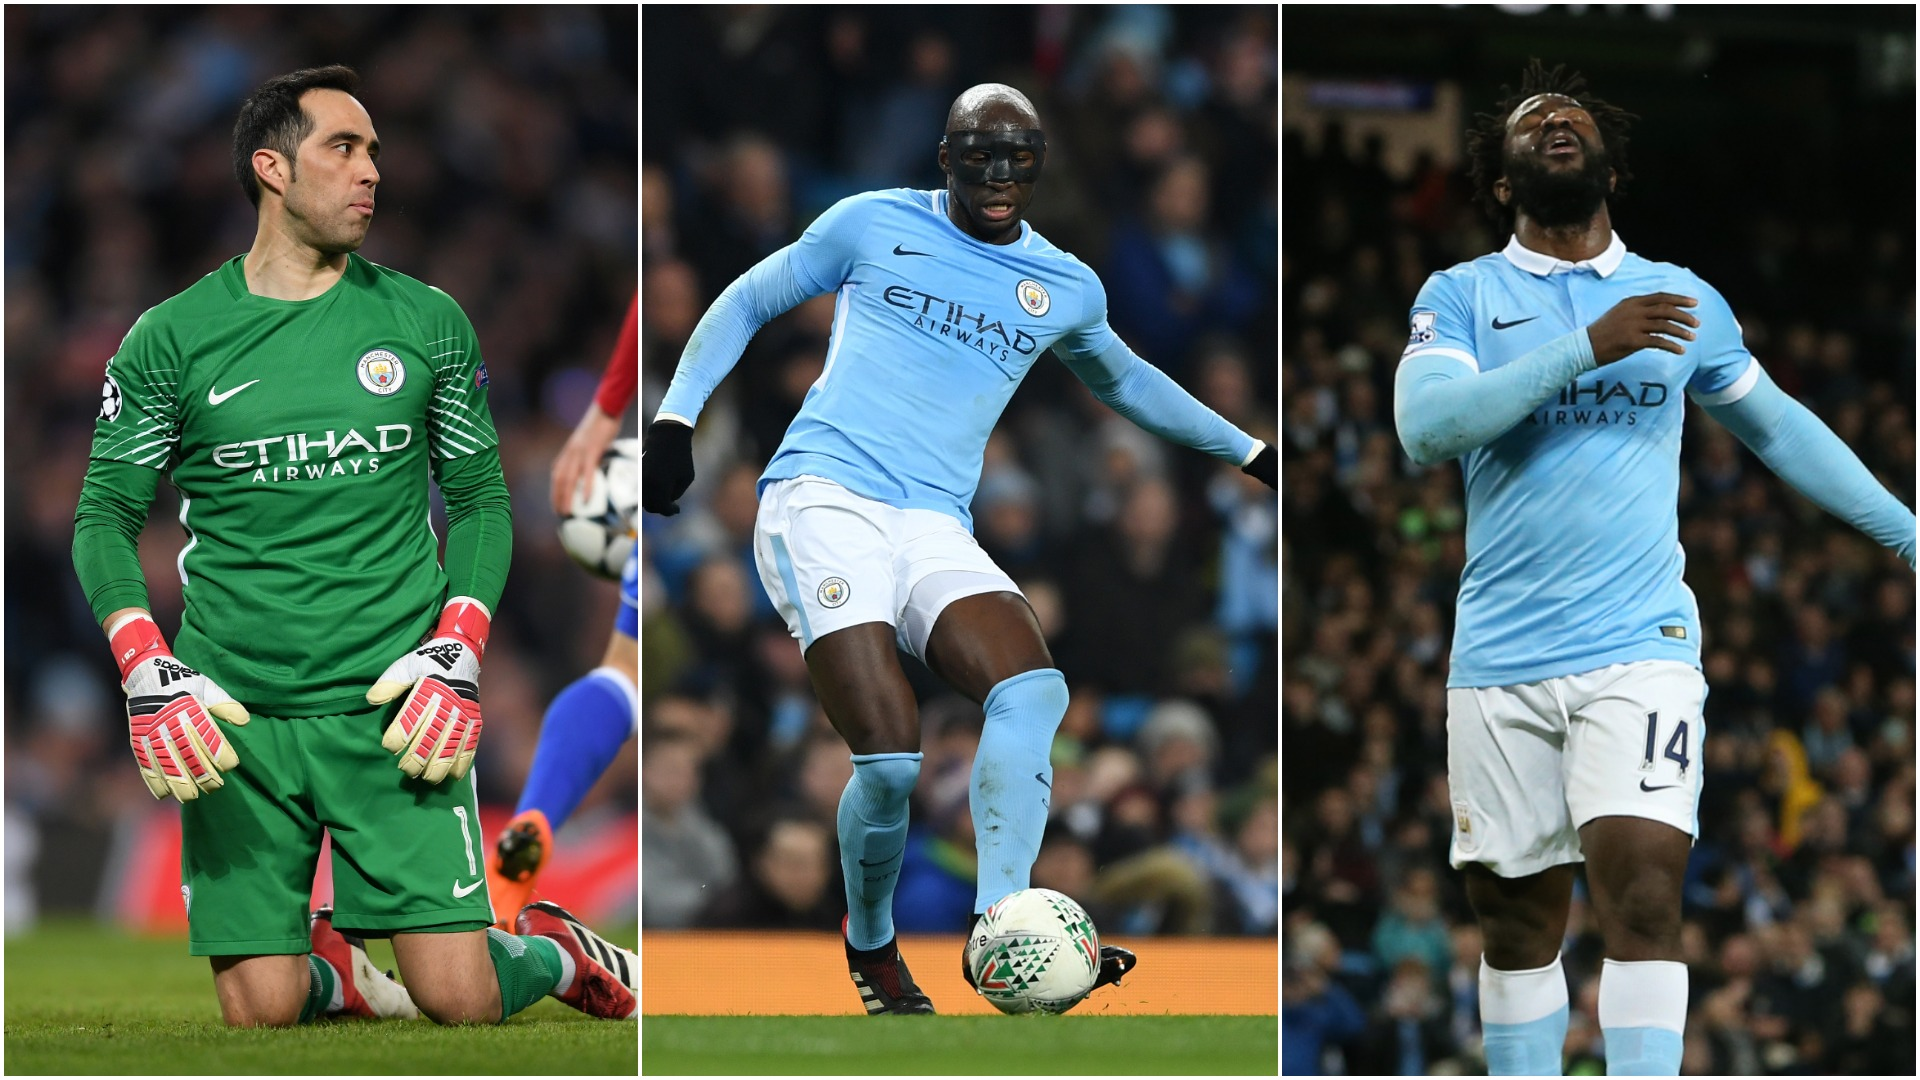 Manchester City 10 years on: Bravo, Bony and the worst buys of the Sheikh Mansour era